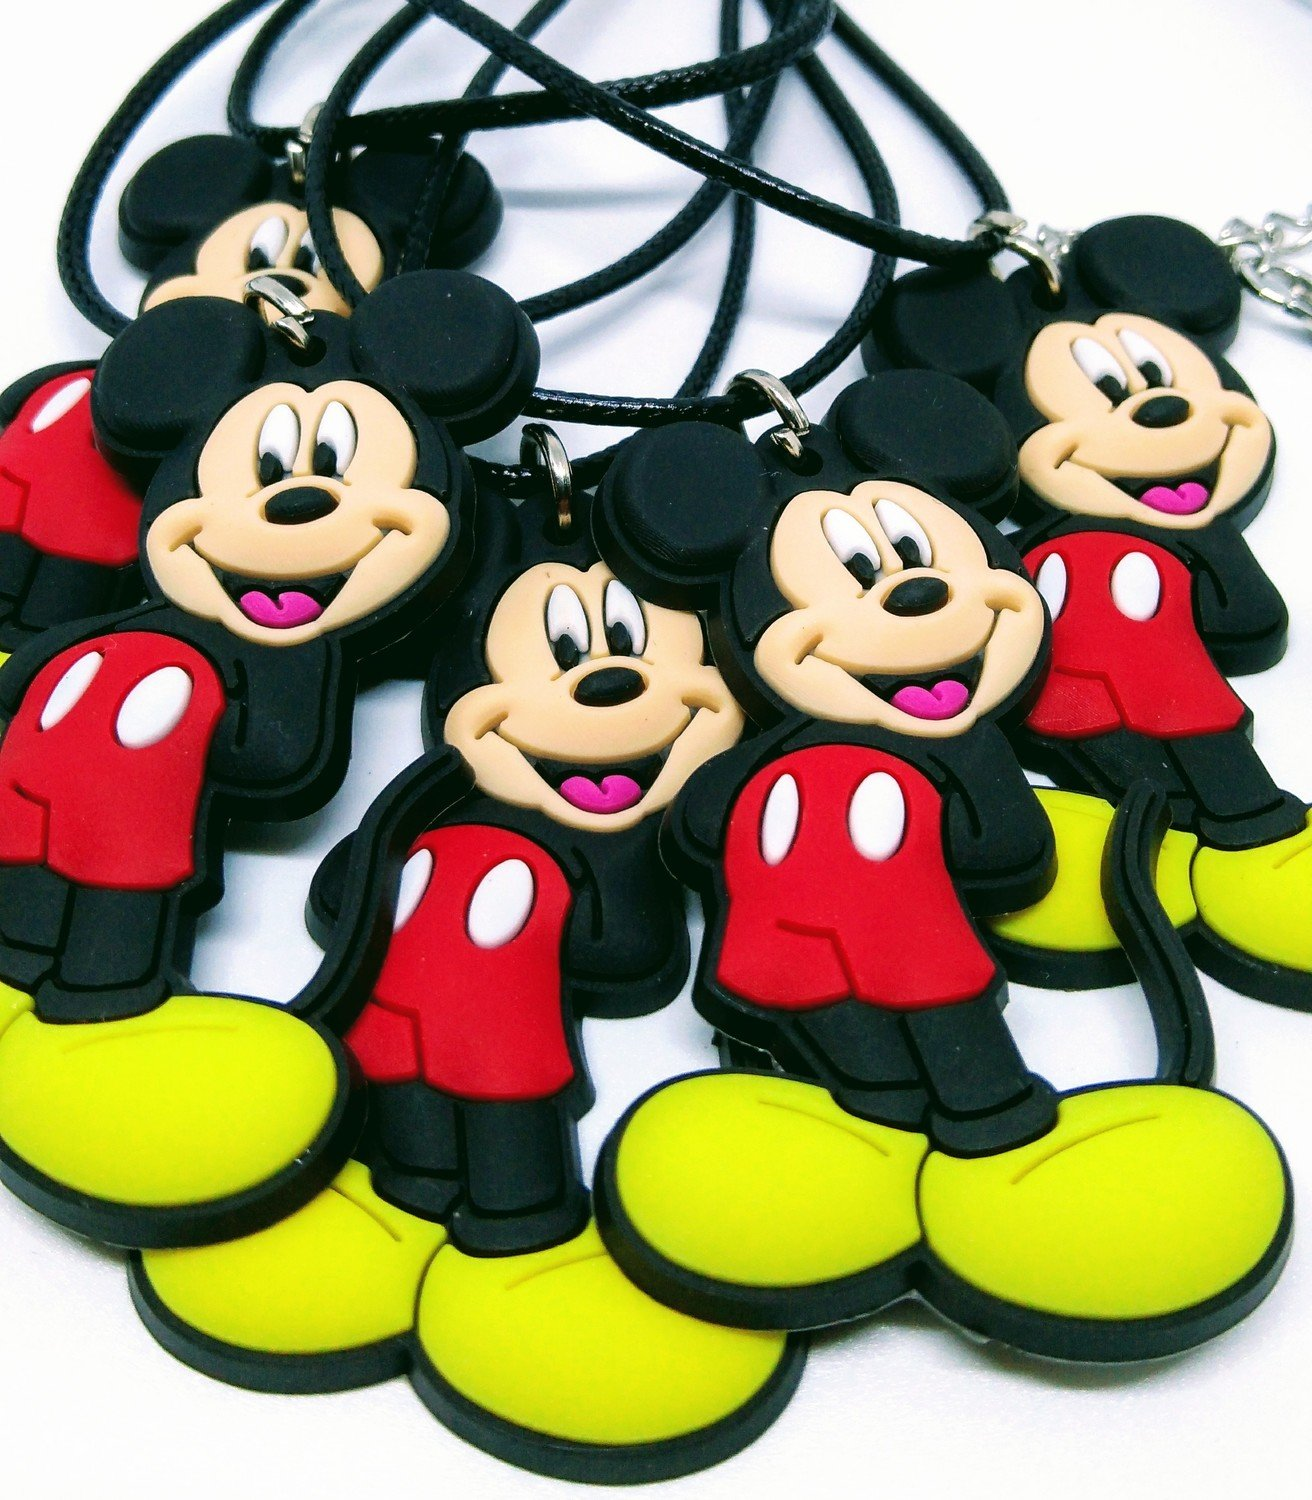 10 Collane Topolino Disney pendente in PVC